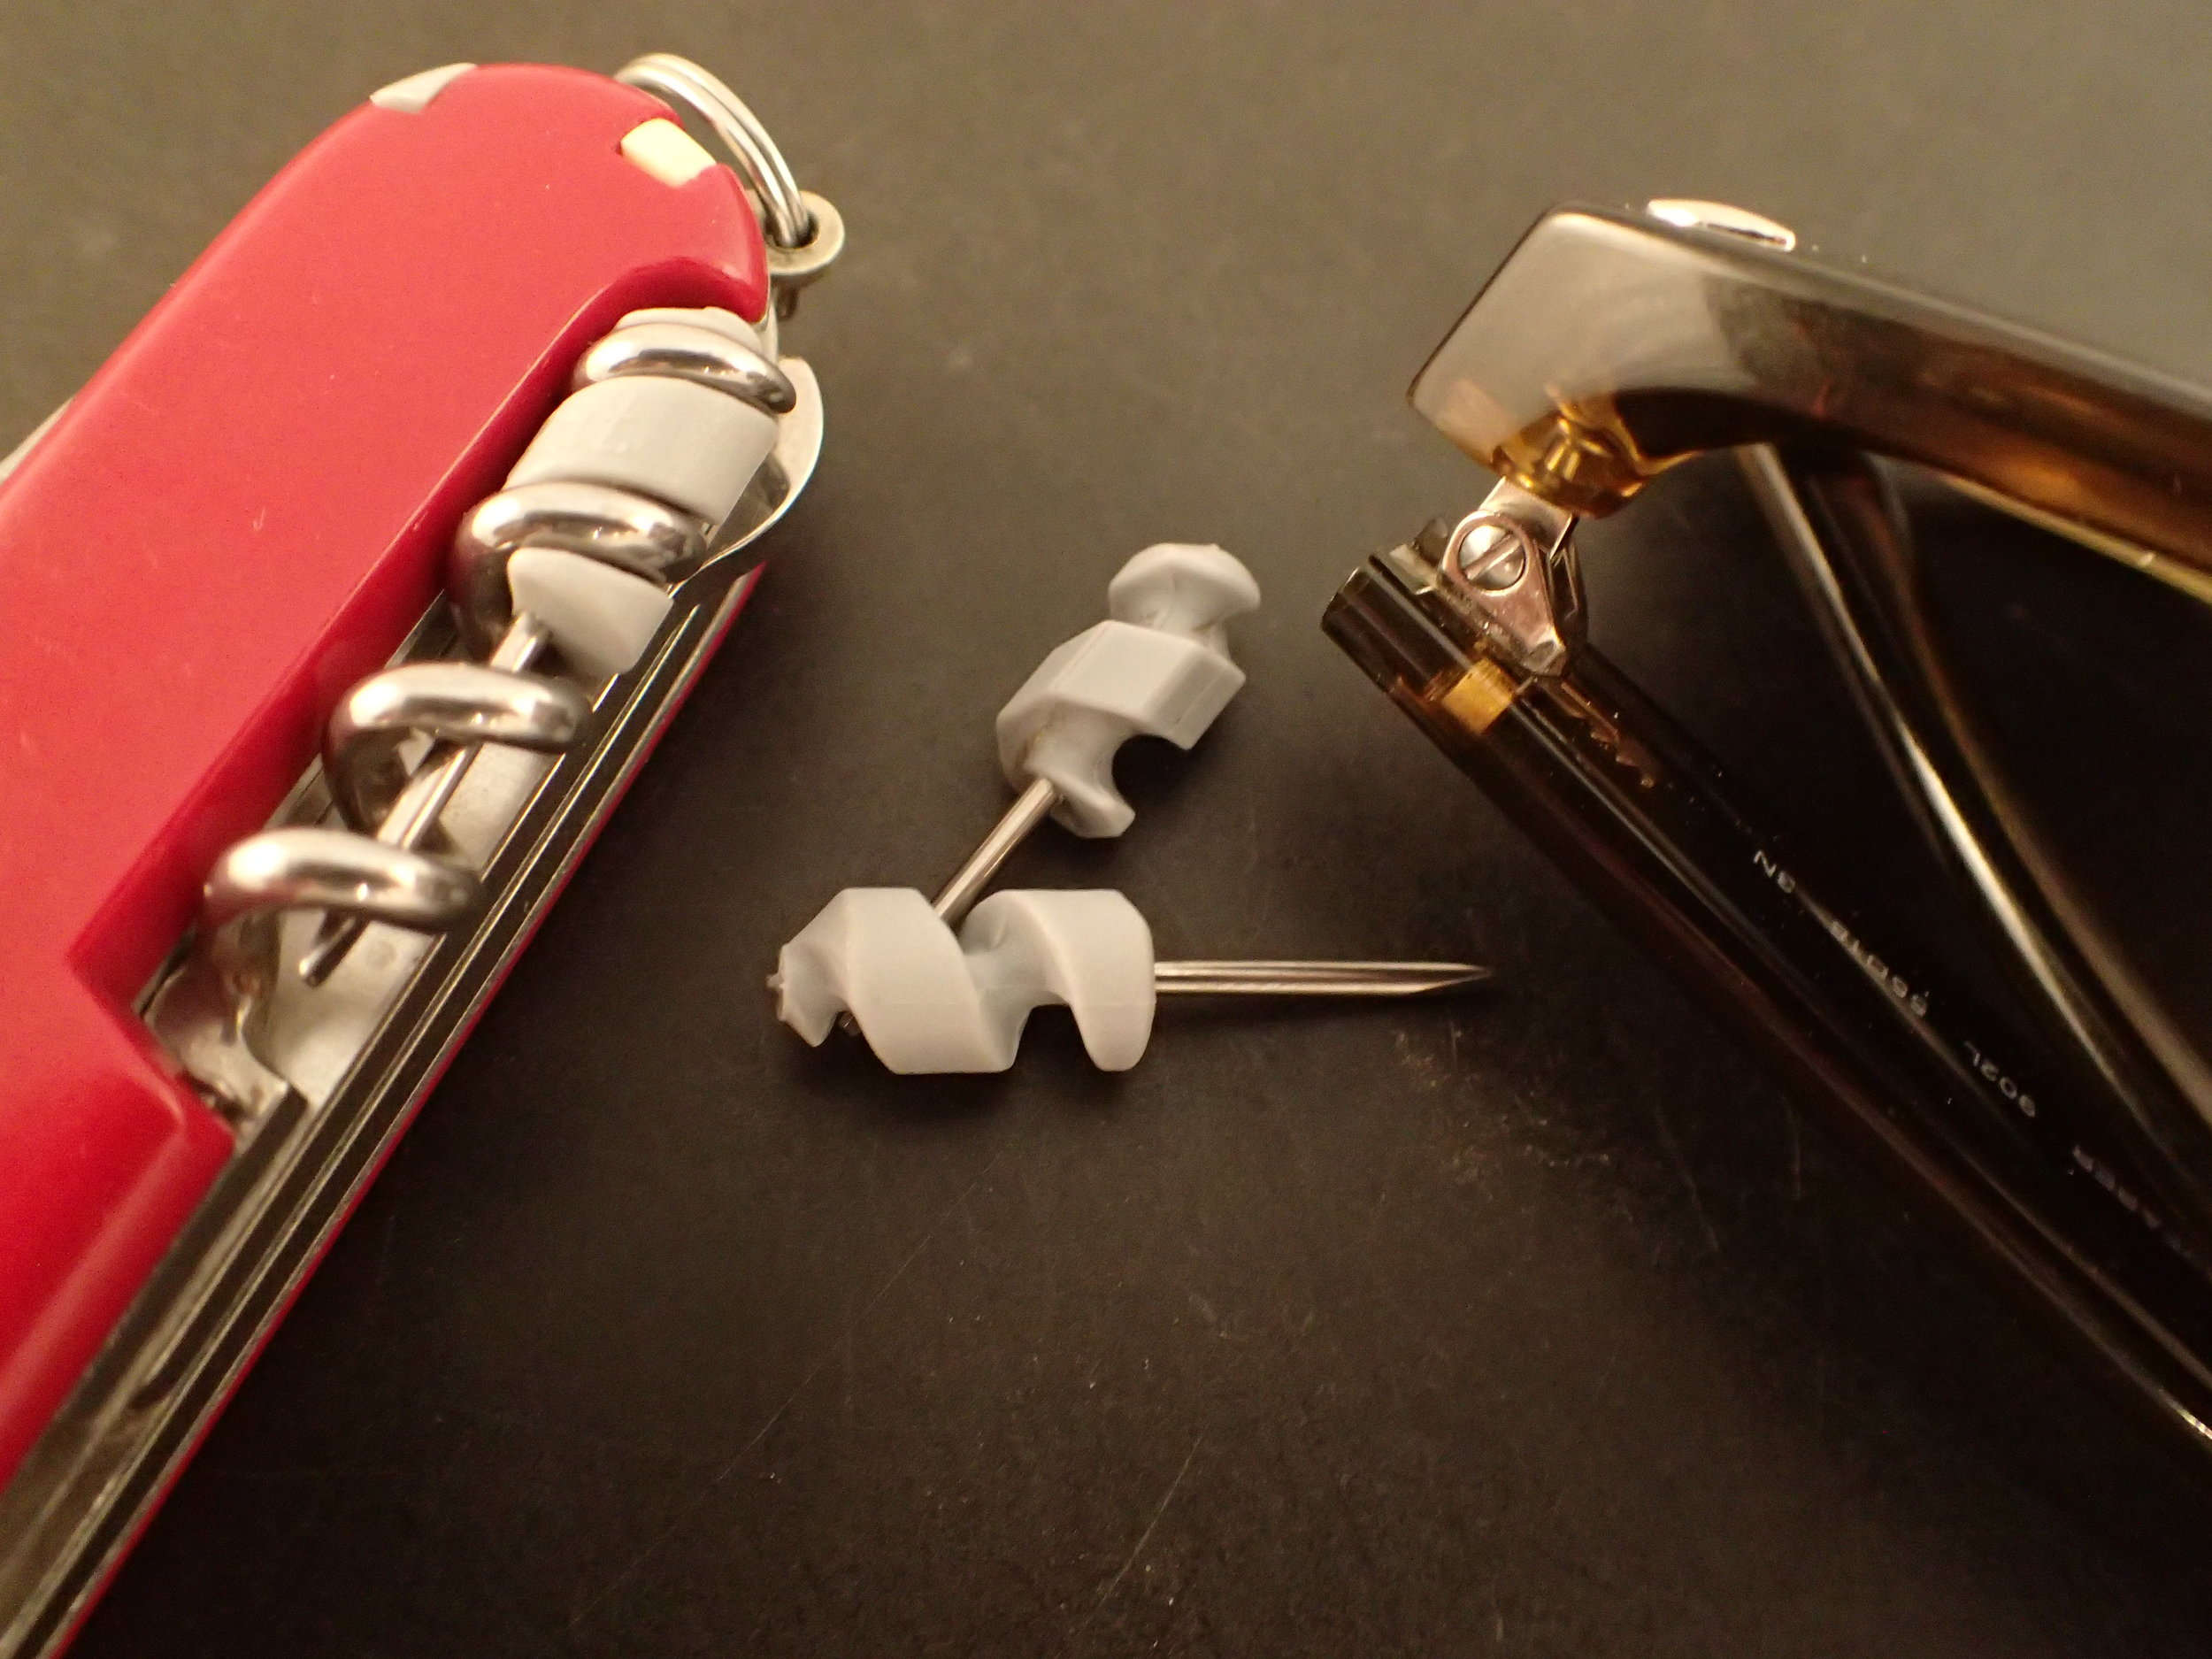 The fine screwdriver in older (smooth, round) and current (faceted) form. Also seen stored in the corkscrew of the Compact.